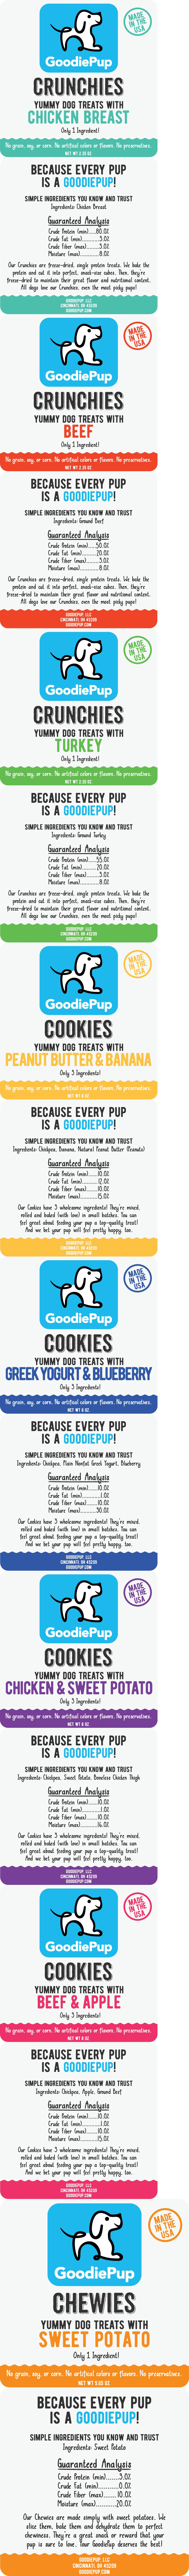 GoodiePup wants you to design our package label for product launch - to be seen by the world!